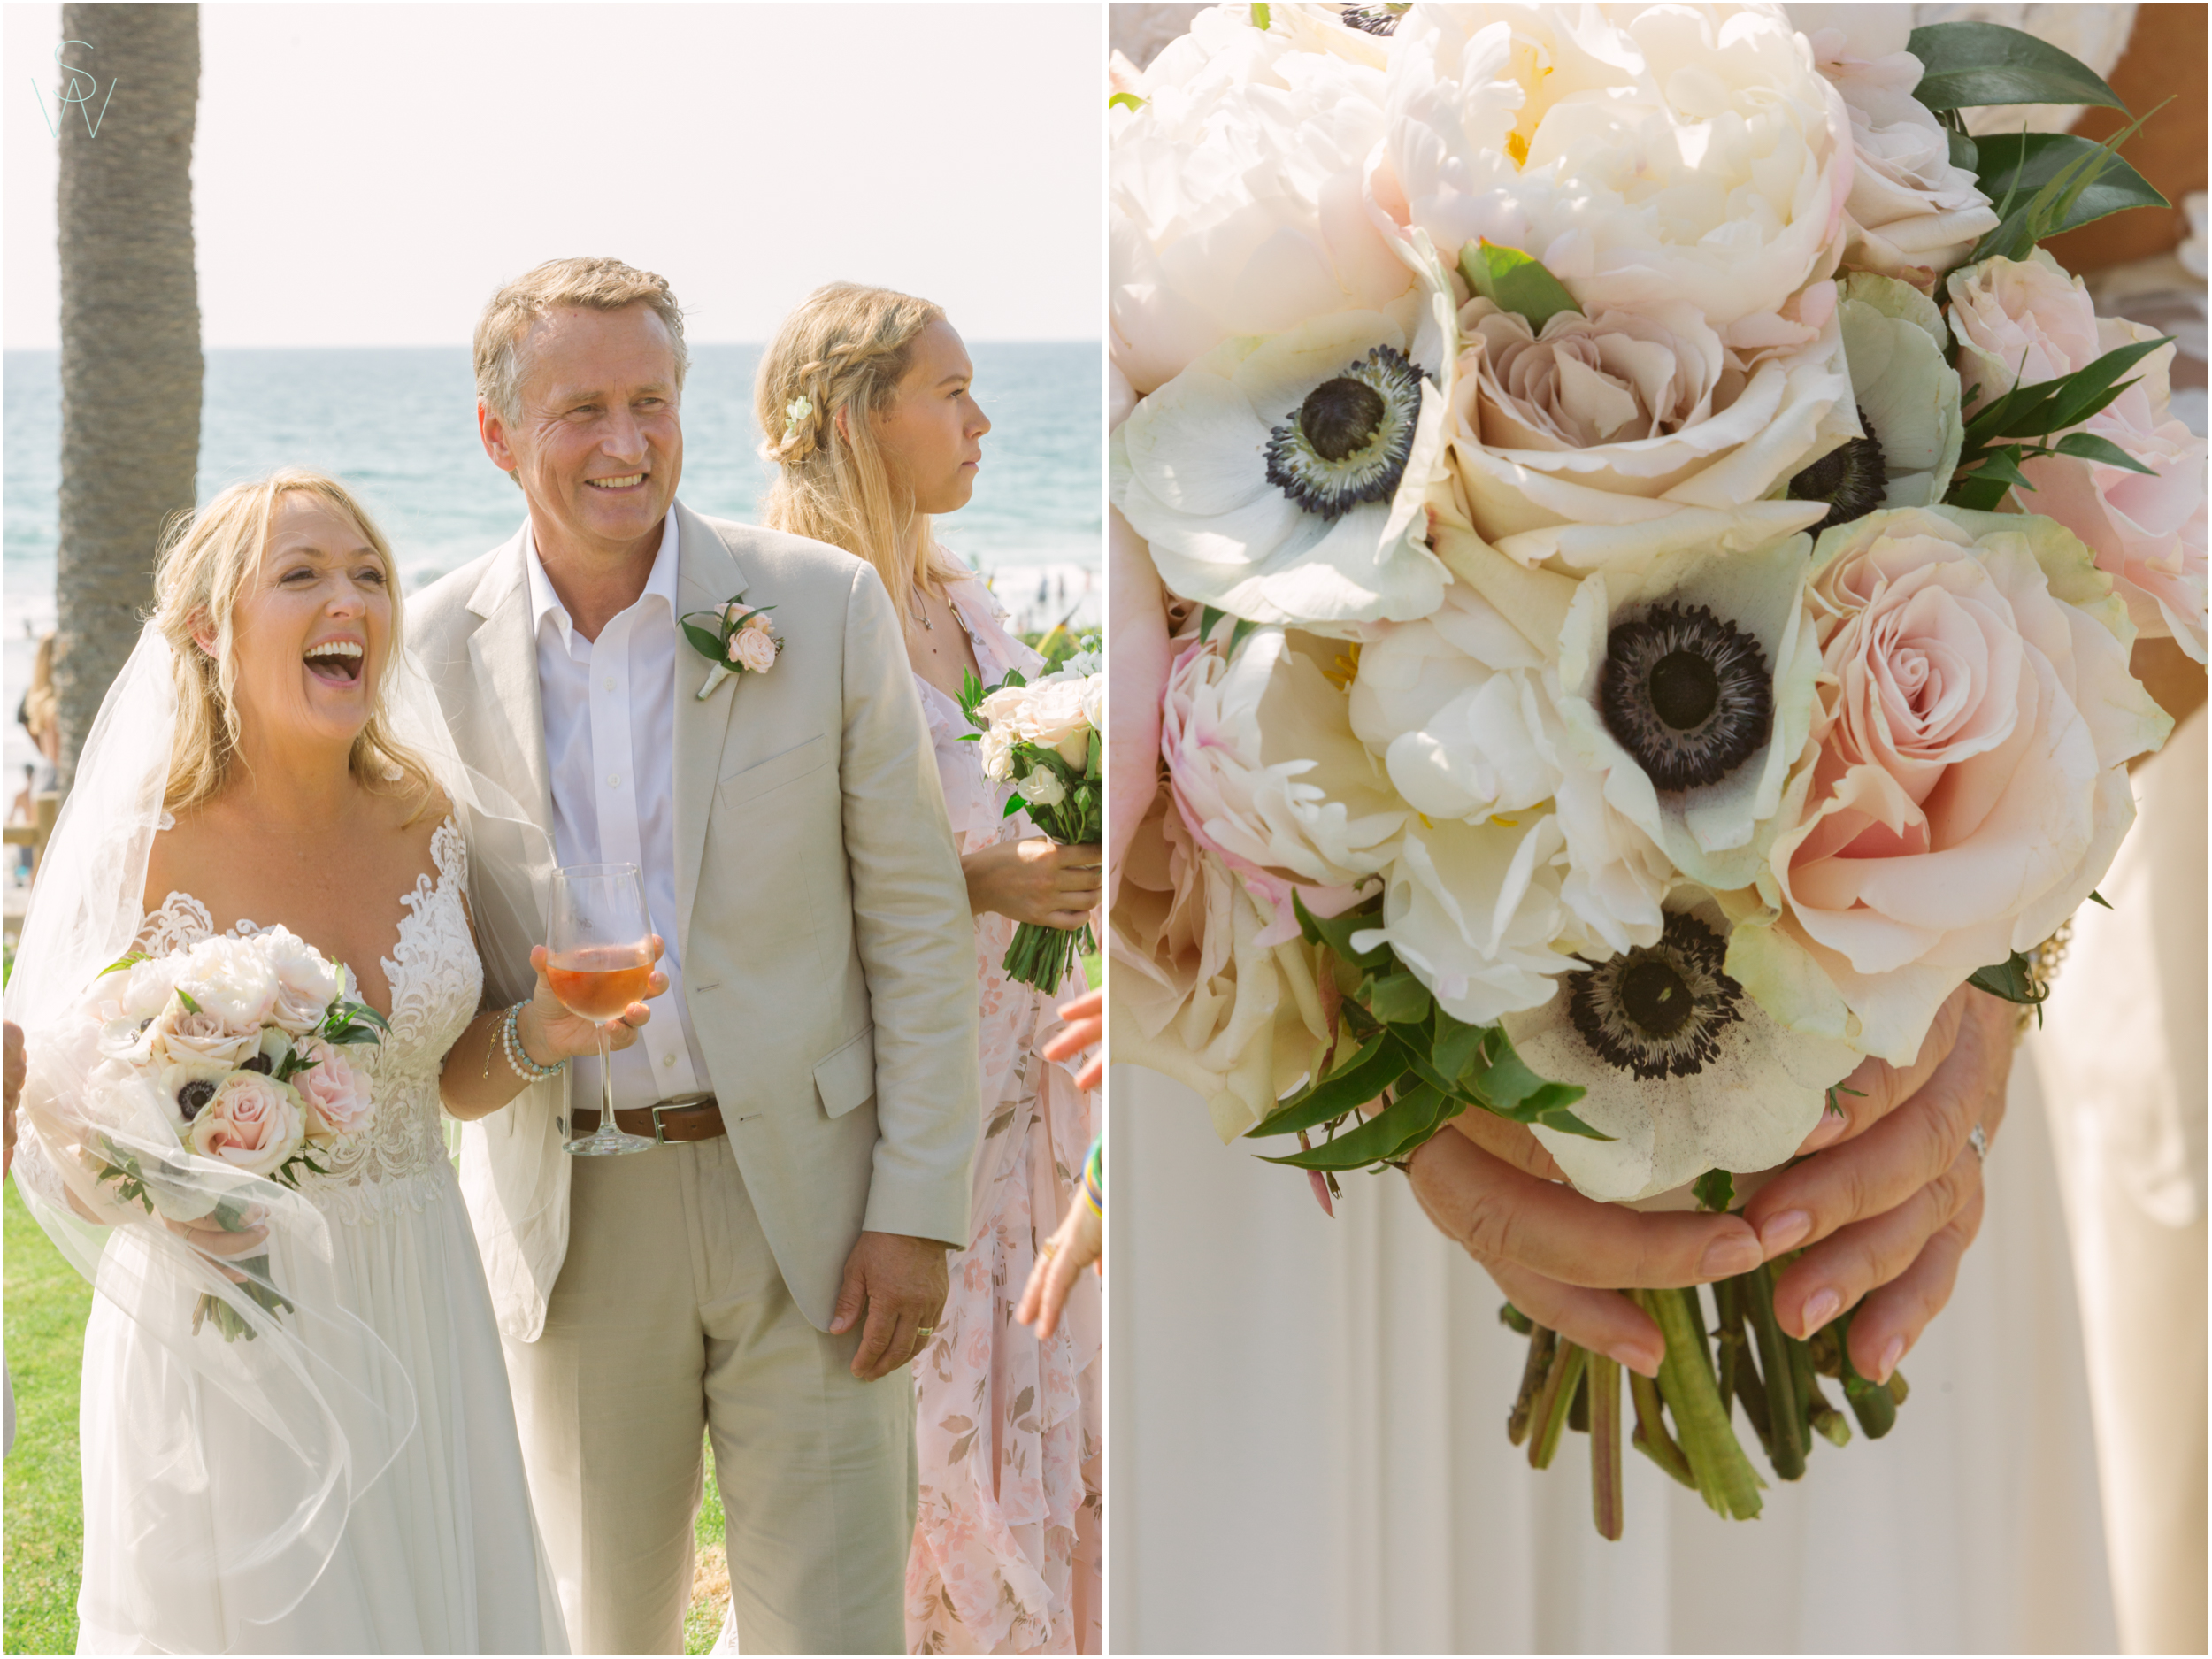 126DEL.MAR.WEDDINGS.Bouquet.photography.shewanders.JPG